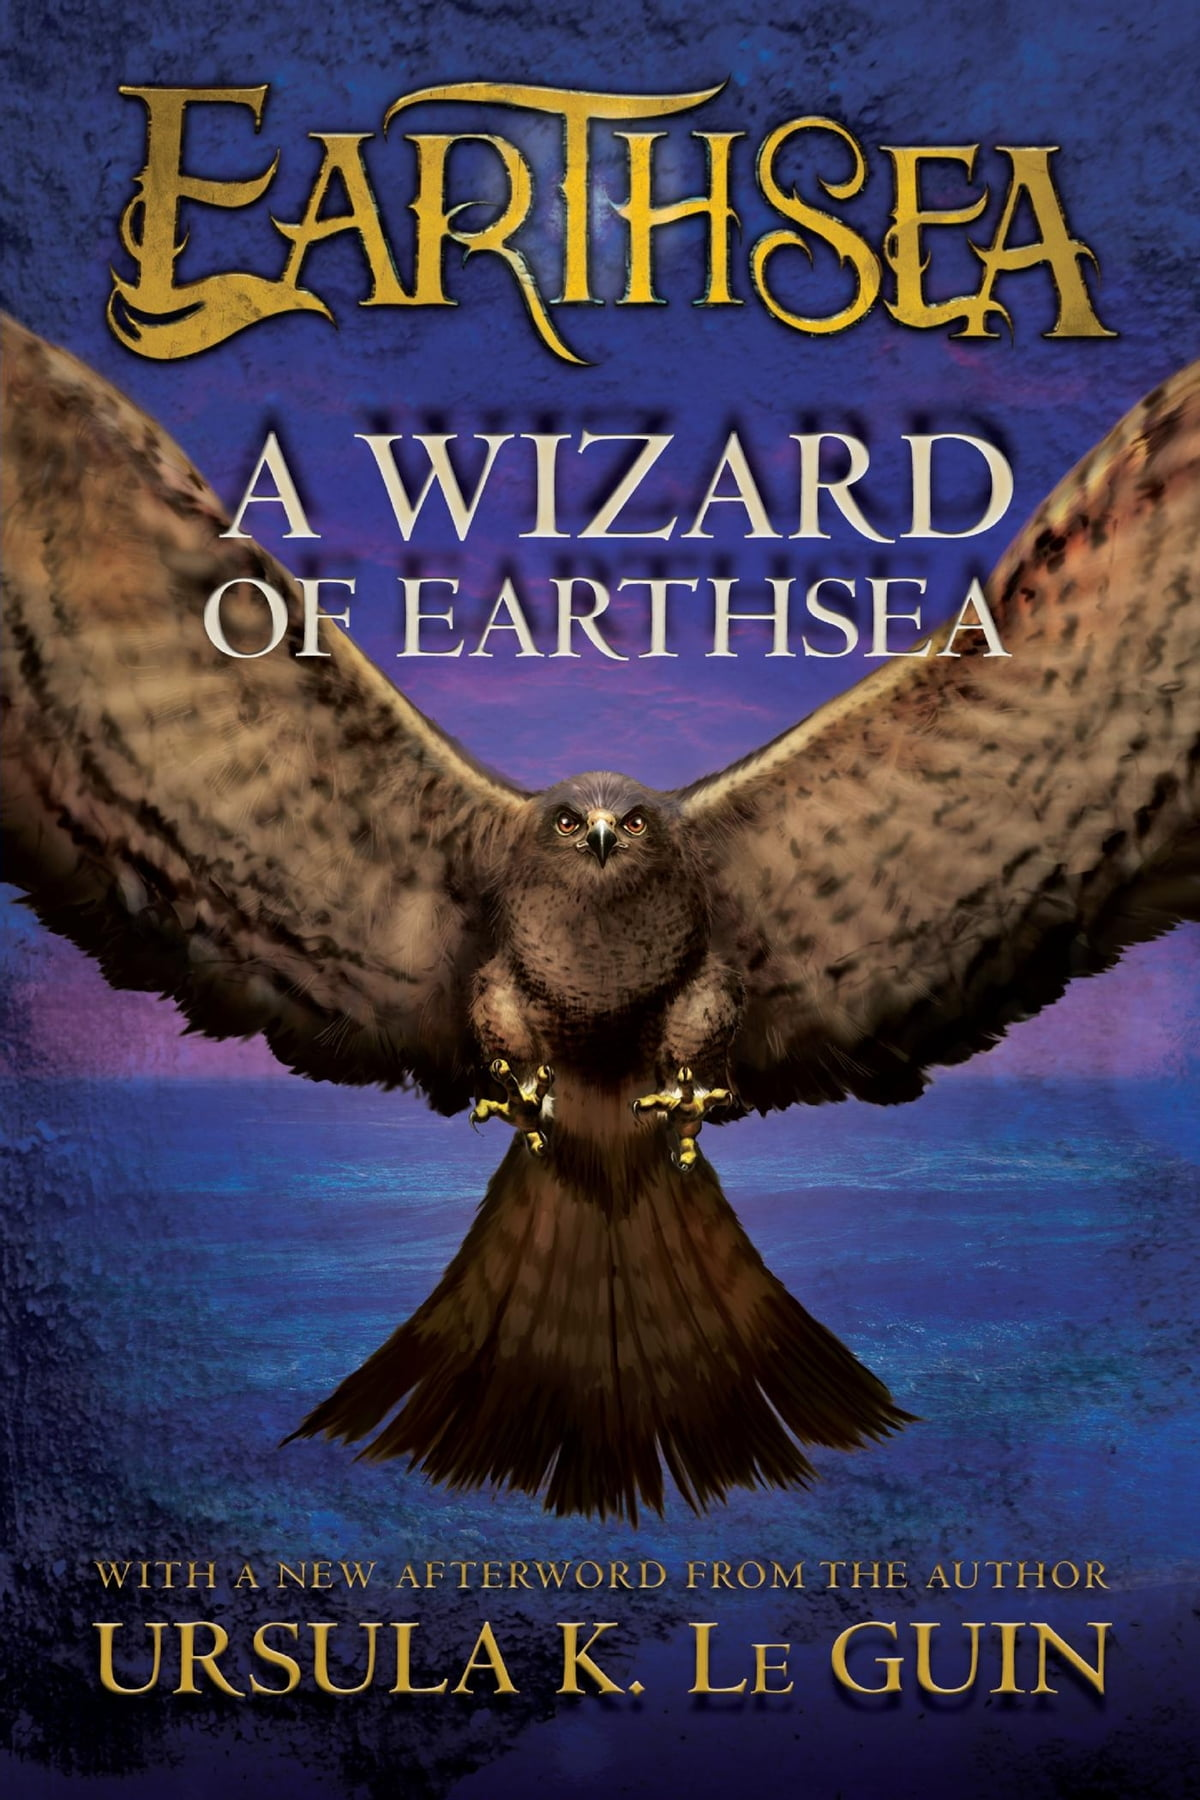 Image result for a wizard of earthsea